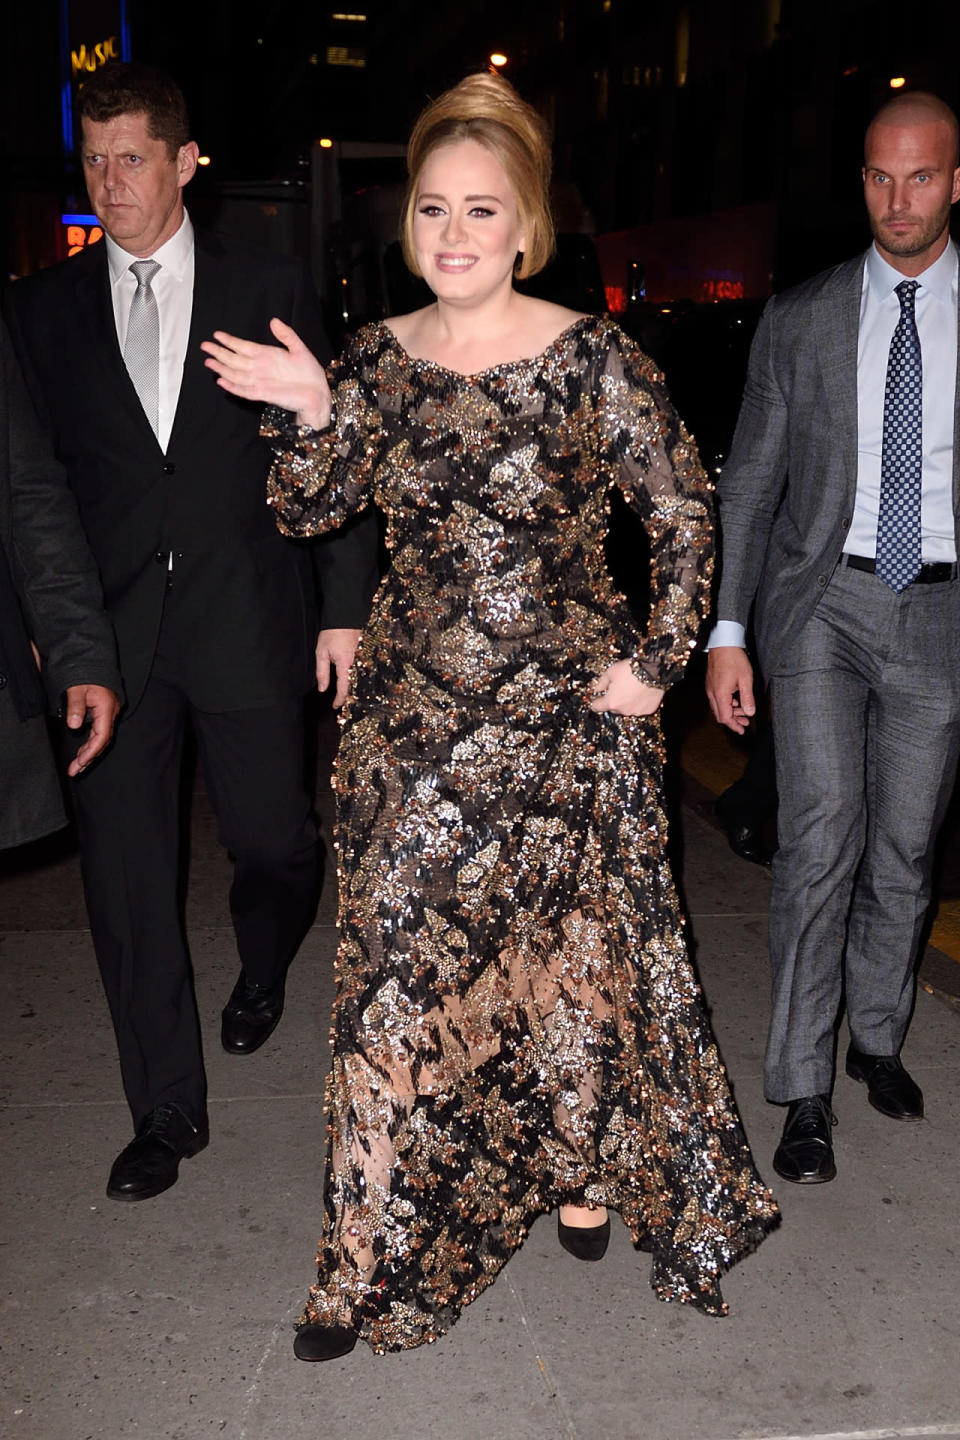 <p>For her first concert in four years, Adele dressed for the special occasion. Calling on her favorite designer Jenny Packham (Kate Middleton's, too!), she went for a black tie look in a full-length, long-sleeve piece completely covered in sequins in festive fall colors. While her shoulder-length hair is usually styled down with a lot of volume, she put it up in a chignon with a center part and wispy bangs. <i>Photo: AKM-GSI</i></p>